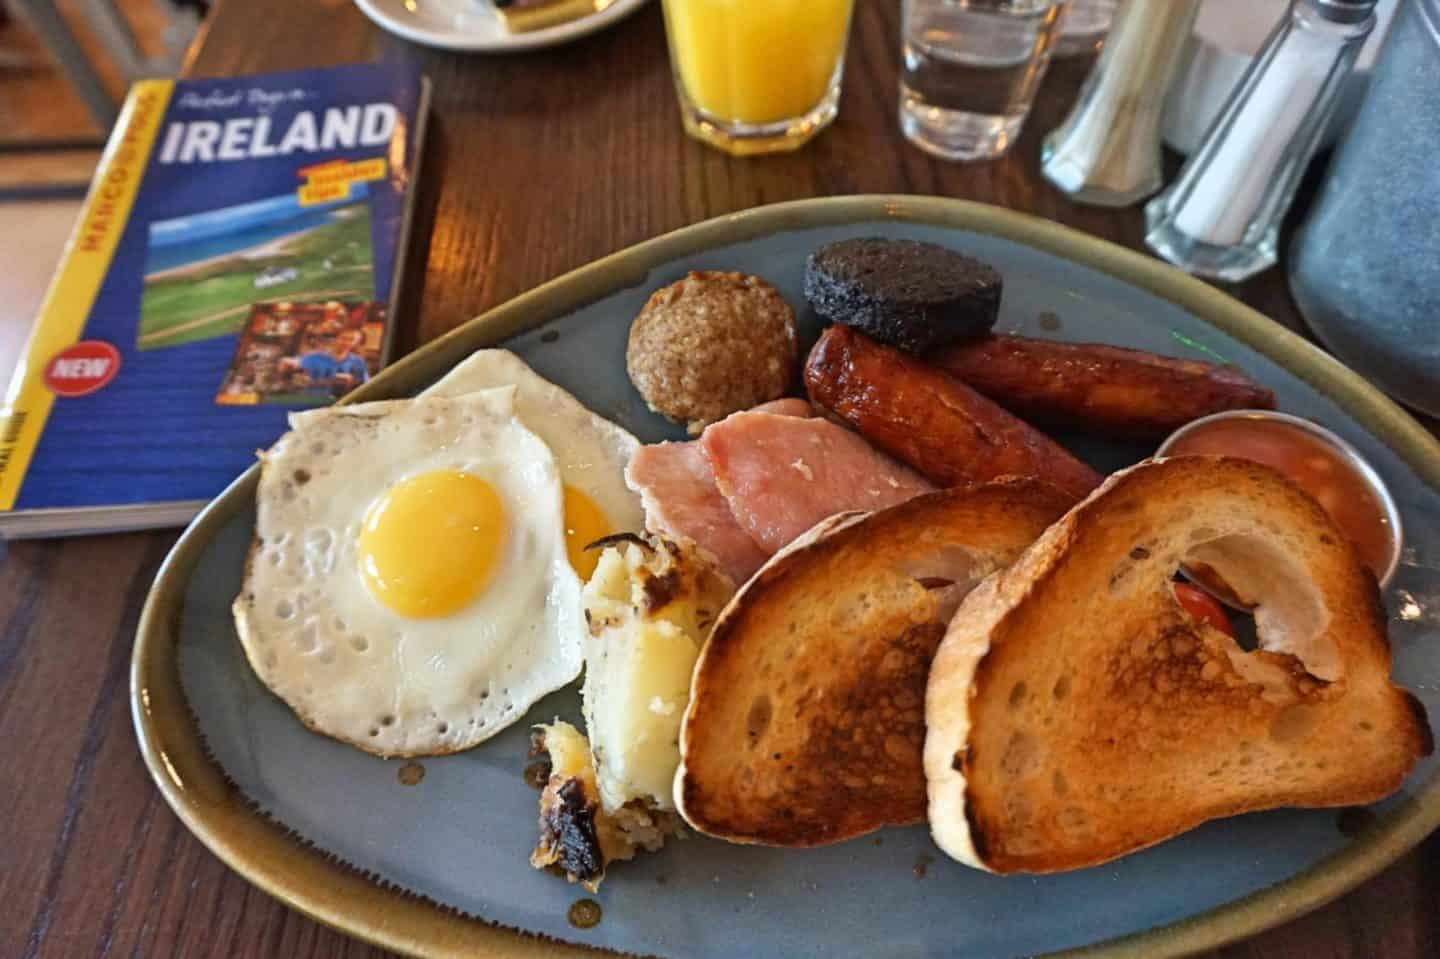 The Buttery Full irish breakfast limerick